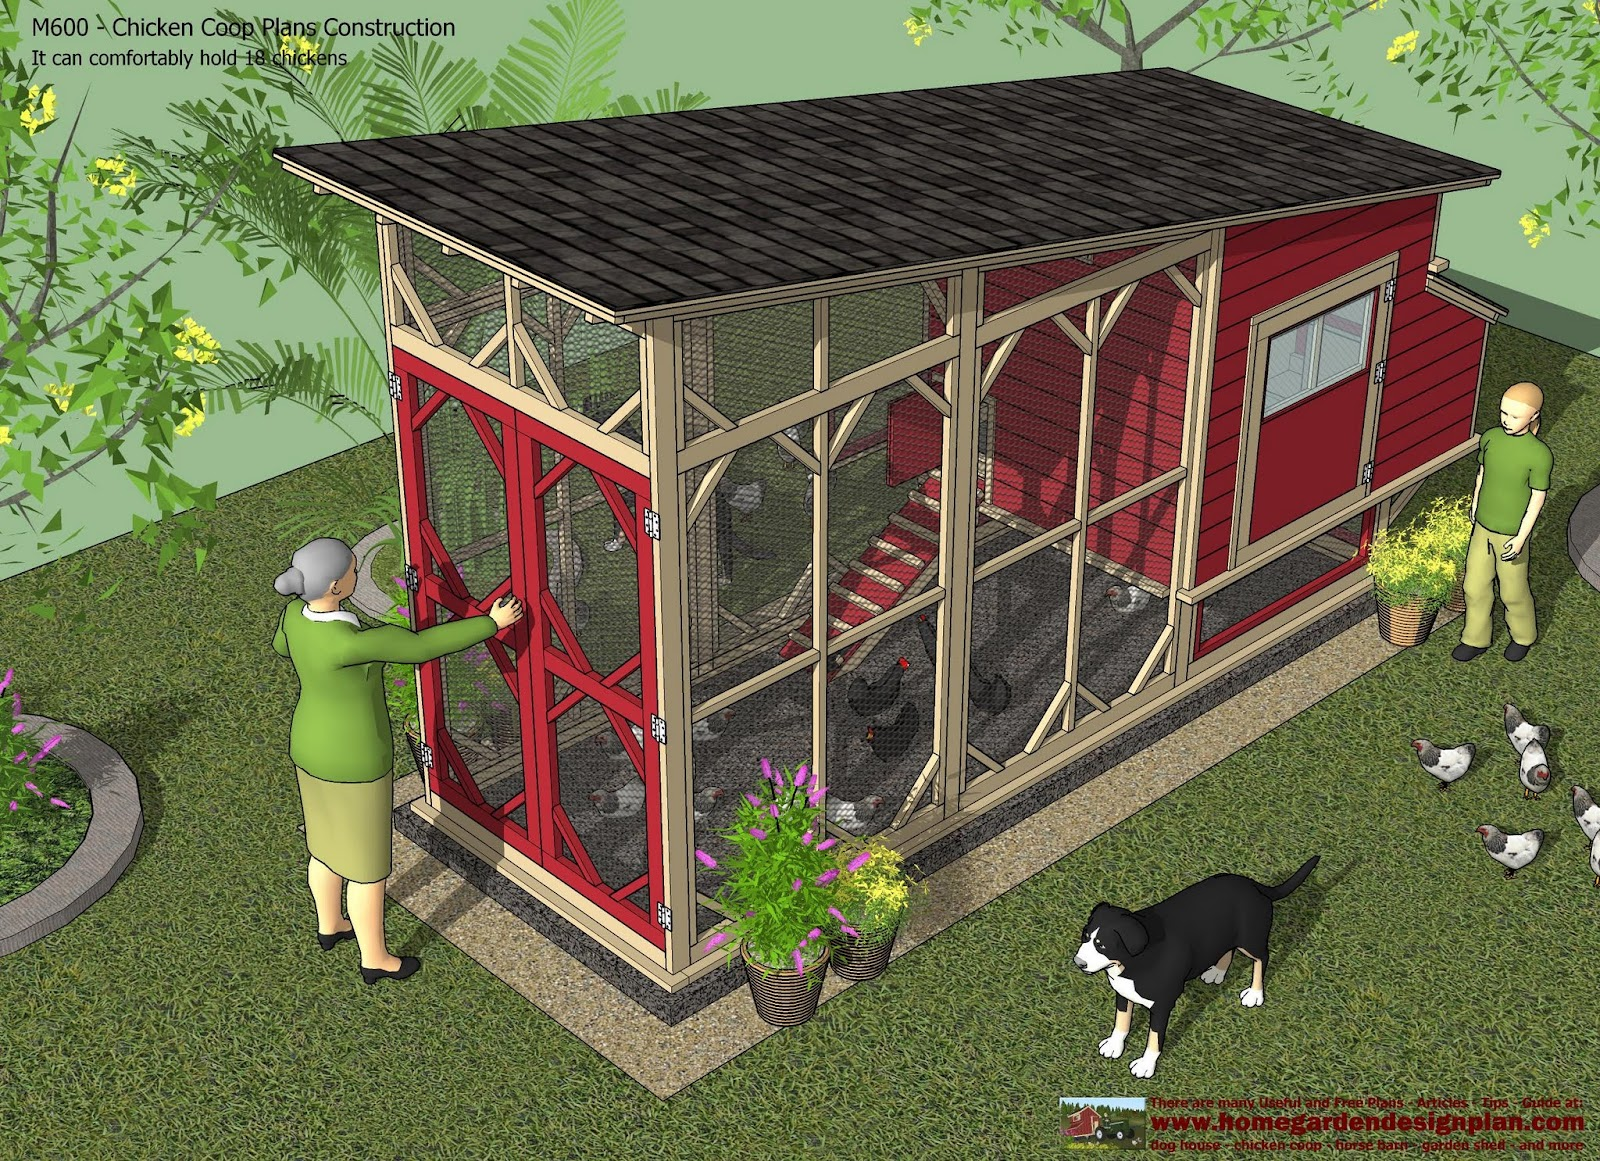 M600 _ Chicken Coop Plans Construction   Chicken Coop Design   How To Build  A Chicken Coop